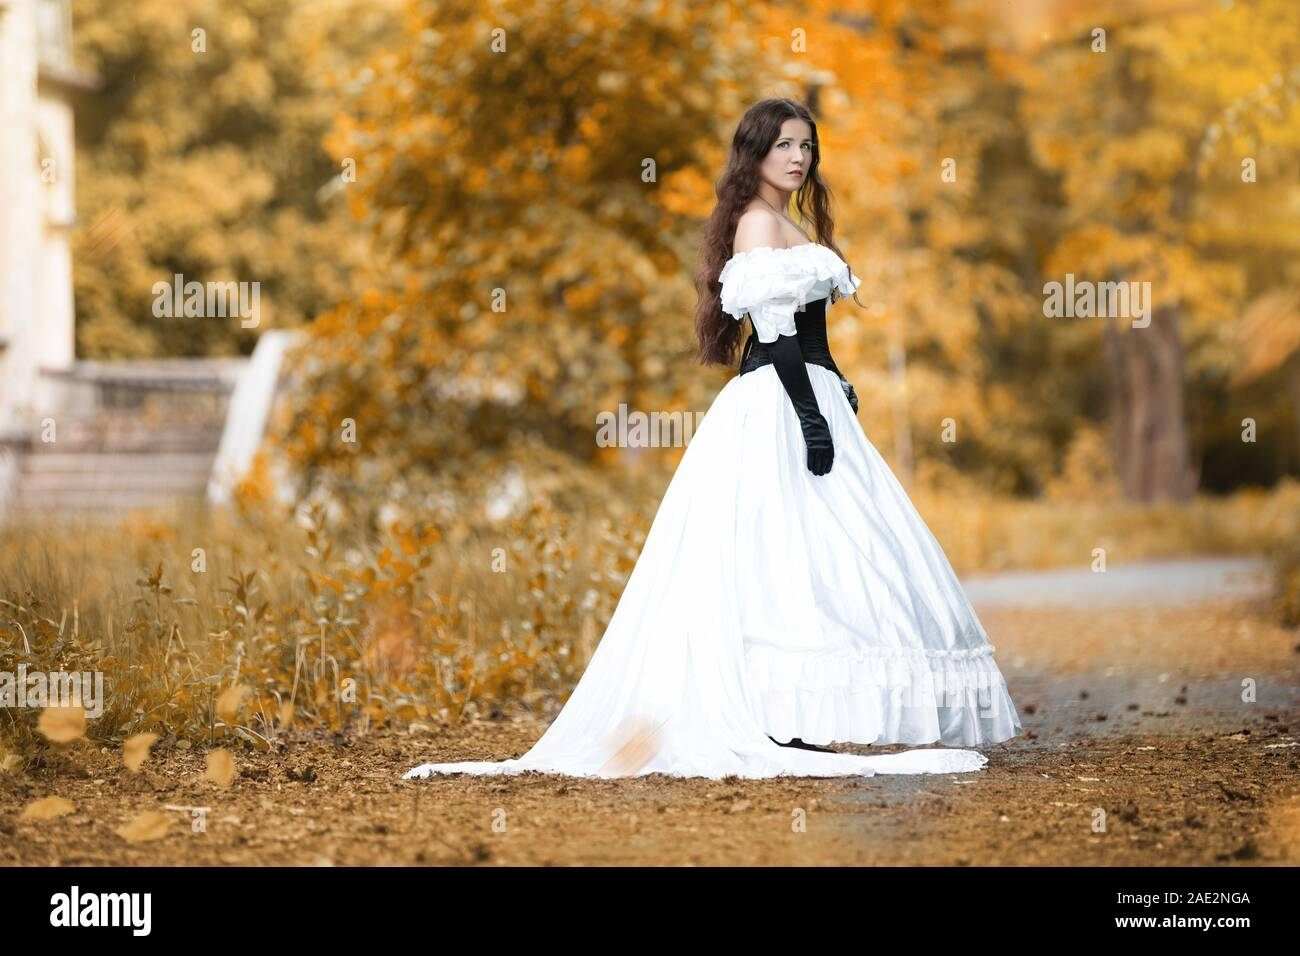 Woman in a white Victorian dress in an autumn park Stock Photo